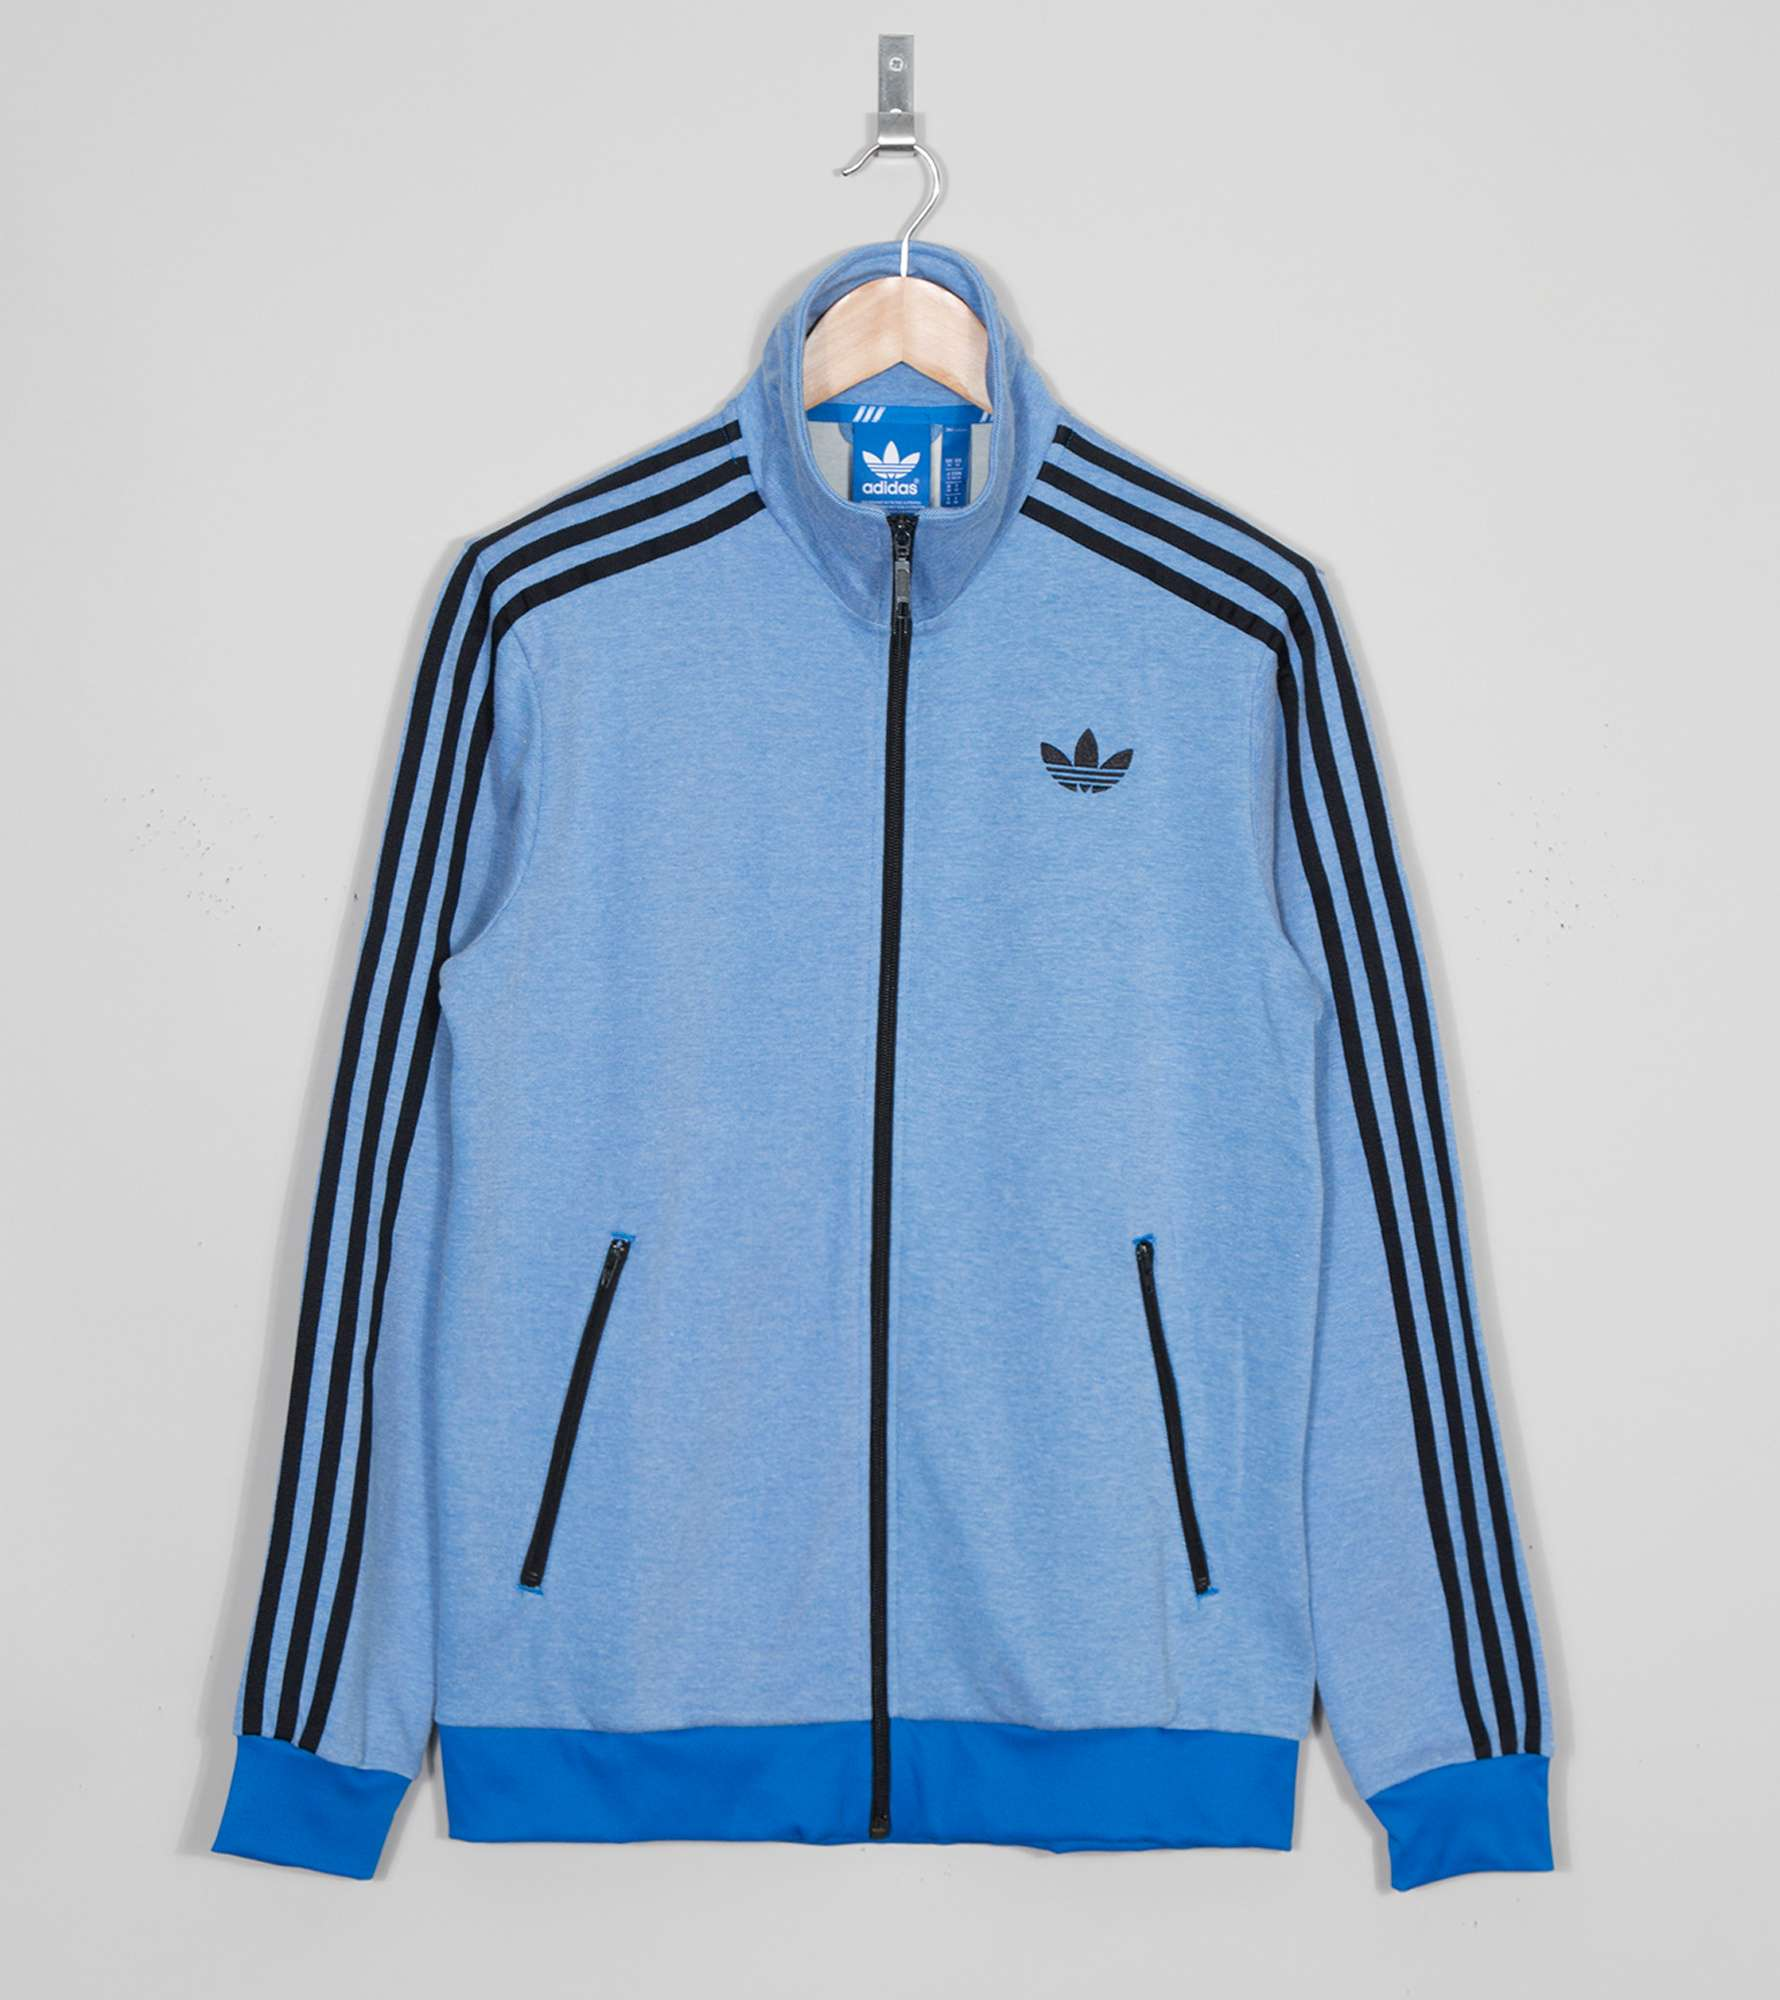 adidas Originals Firebird Pique Track Top | Size?